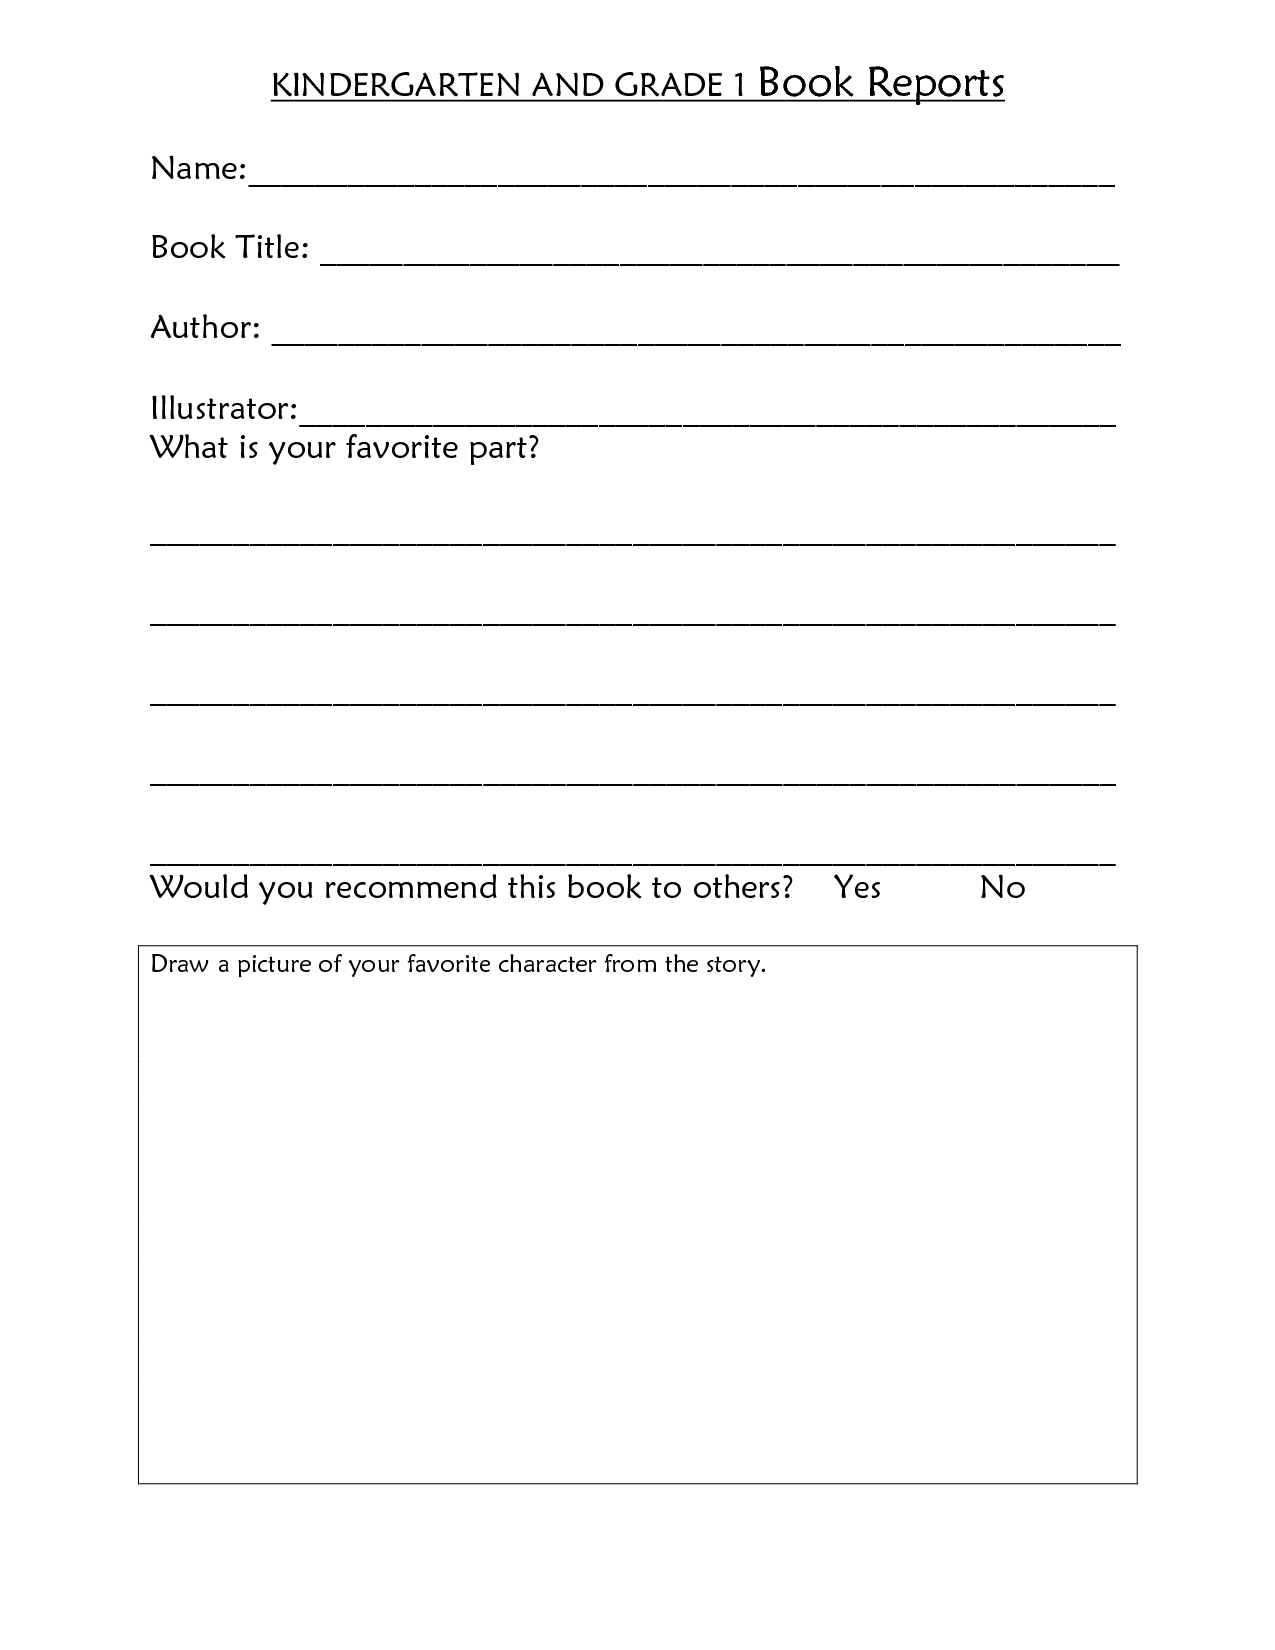 18 Best Images Of Kindergarten Book Report Worksheet